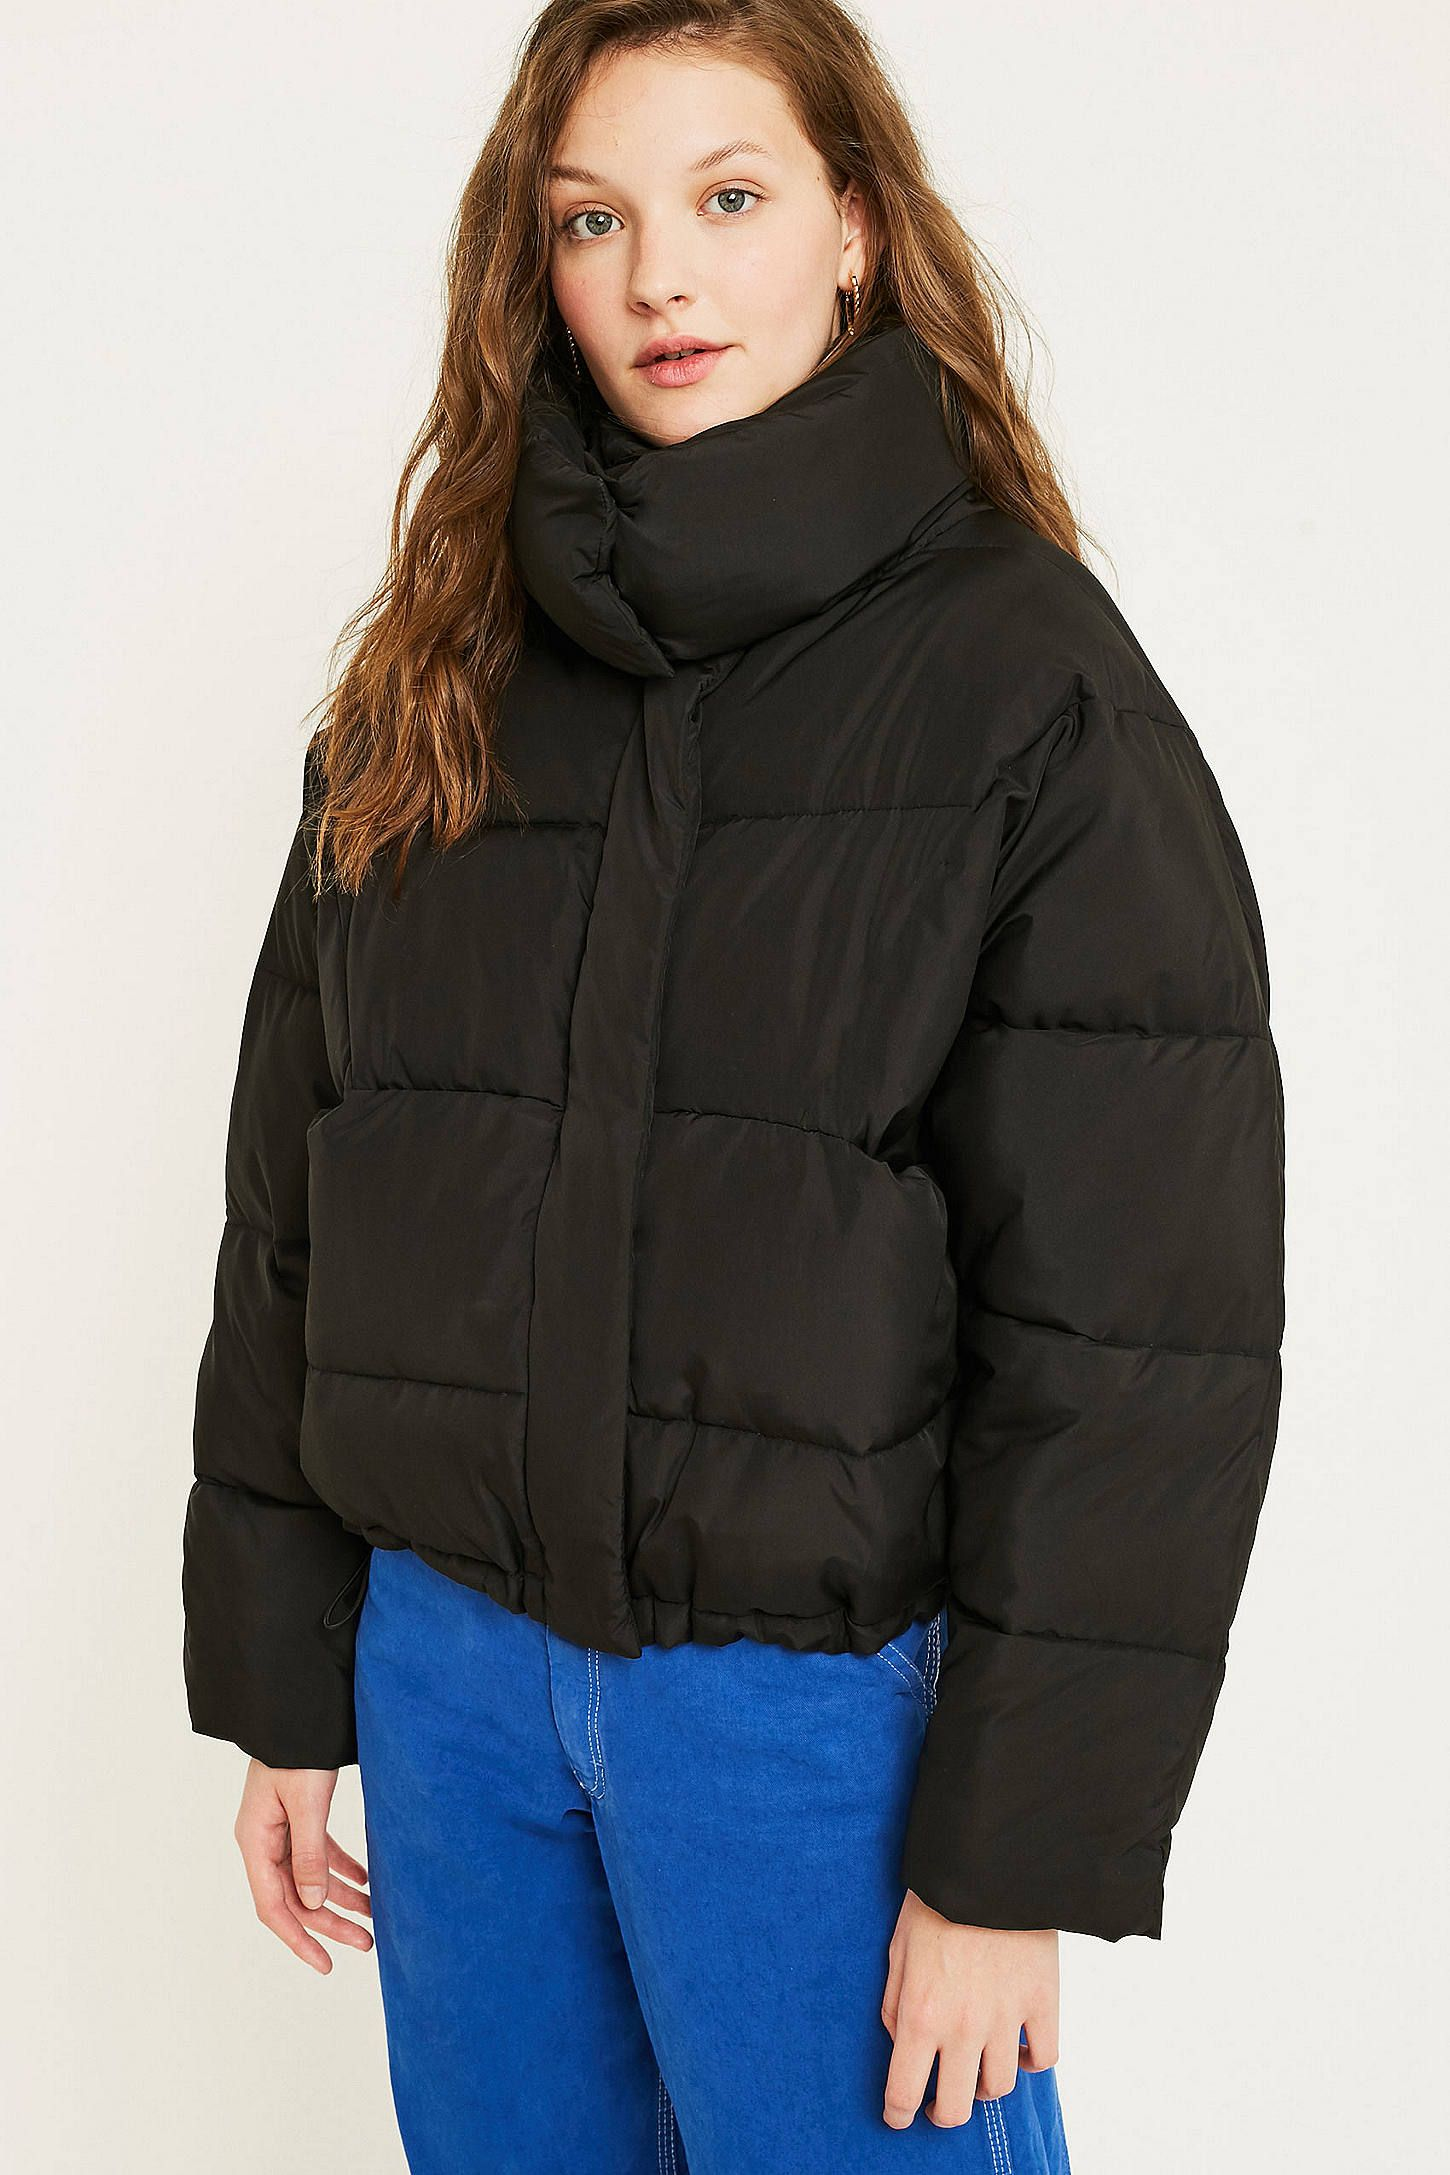 Uo Black Contrast Lined Pillow Puffer Jacket Puffer Jacket Black Jackets Puffer Jackets [ 2175 x 1450 Pixel ]